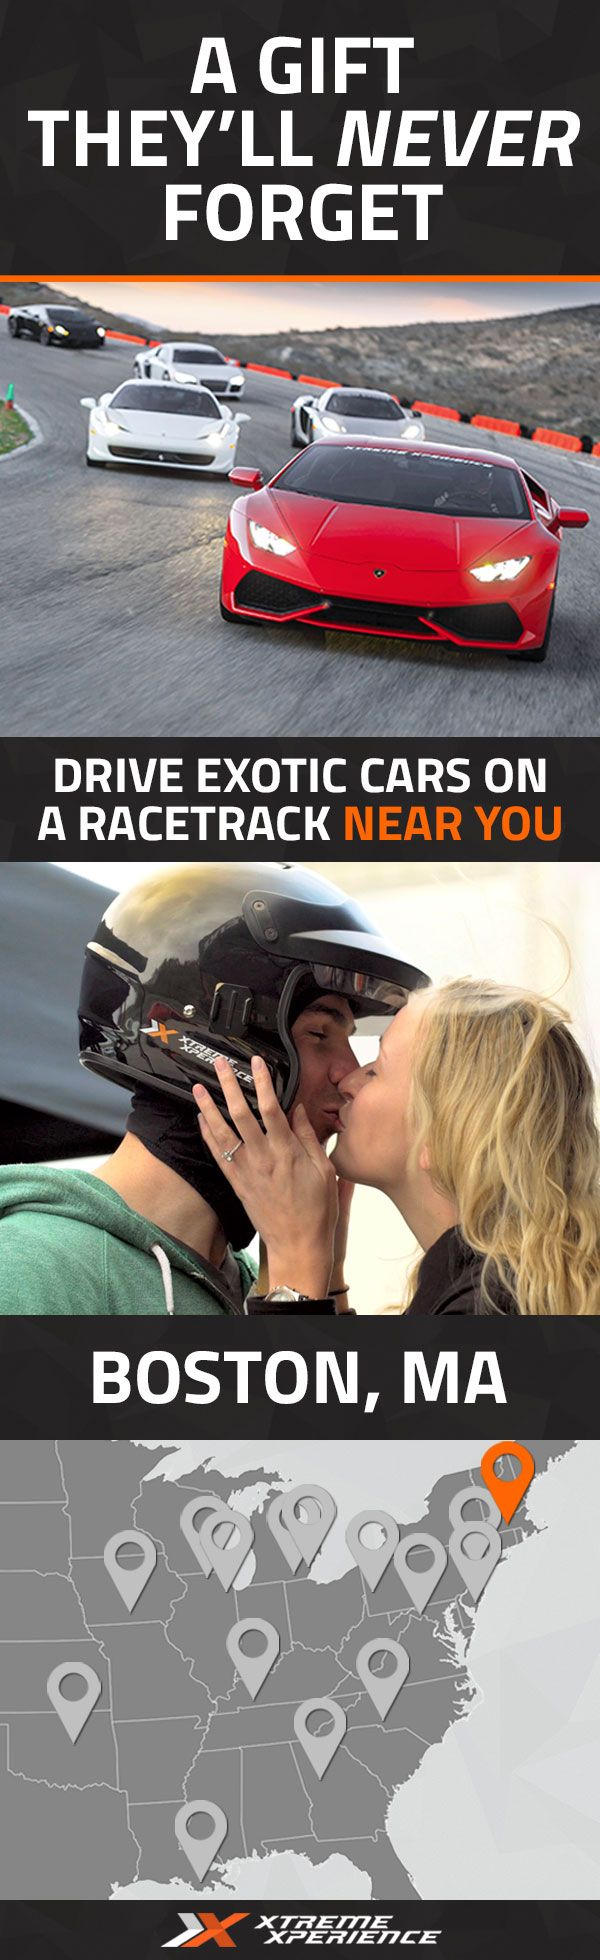 Give him an unforgettable gift this year. Driving a Ferrari, Lamborghini, Porsche or other exotic sports car on a racetrack is a unique gift idea that is guaranteed to leave a smile on his face, a good story to tell and a life-long memory. Xtreme Xperience brings the thrill of a lifetime to you at Palmer Motorsports Park, August 13-14, 2016 ONLY. Reserve your Supercar Xperience today for as low as $219. Space is limited!